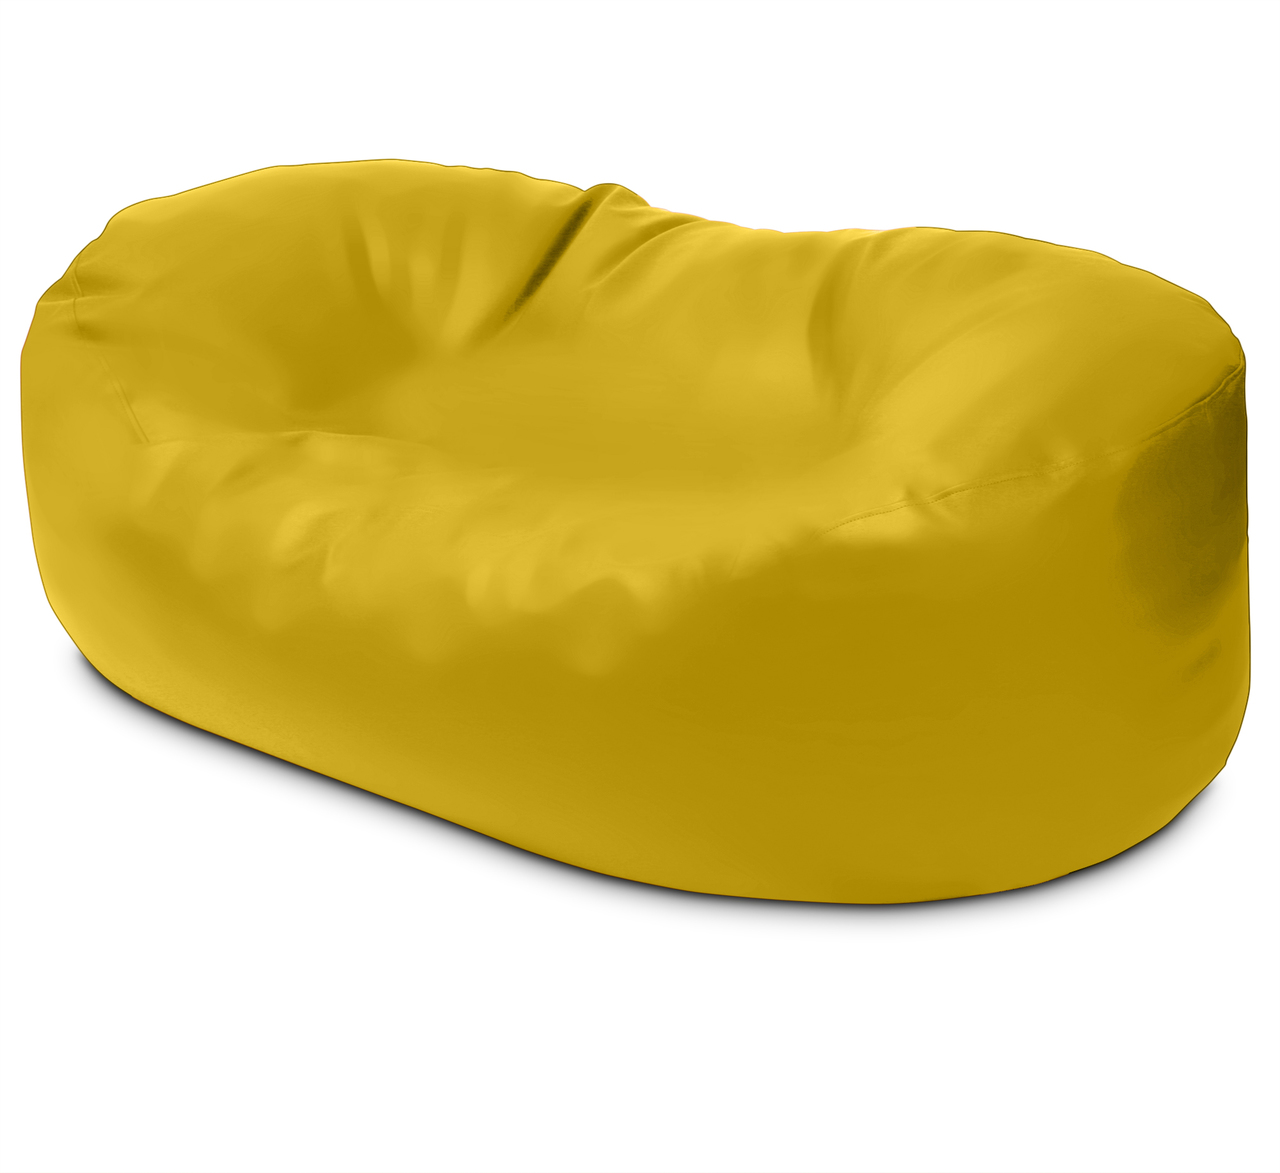 Classic 2m Couch in canary